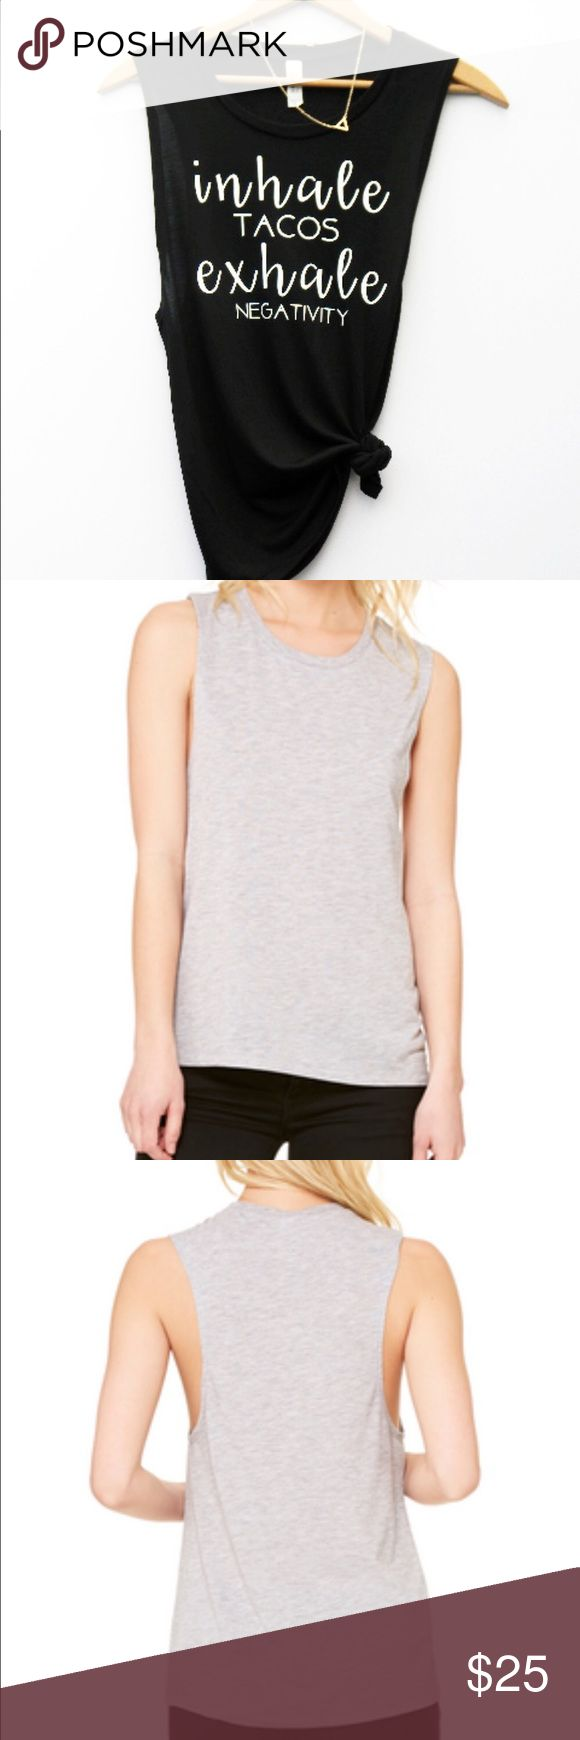 ▷Inhale Tacos, Exhale Negativity. ▷This quote you'll only understand if you love to eat like me! This soft tank is perfect for Taco Tuesday, whether your staying at home, or going out.   ▷This feminine muscle tank is a must-have for workouts, running errands, lounging, or going out on the town. You can dress it up or dress it down. The tank is exceptionally soft and drapes perfectly around curves. The modern elongated armholes and curved bottom hem make this tank perfect for layering…